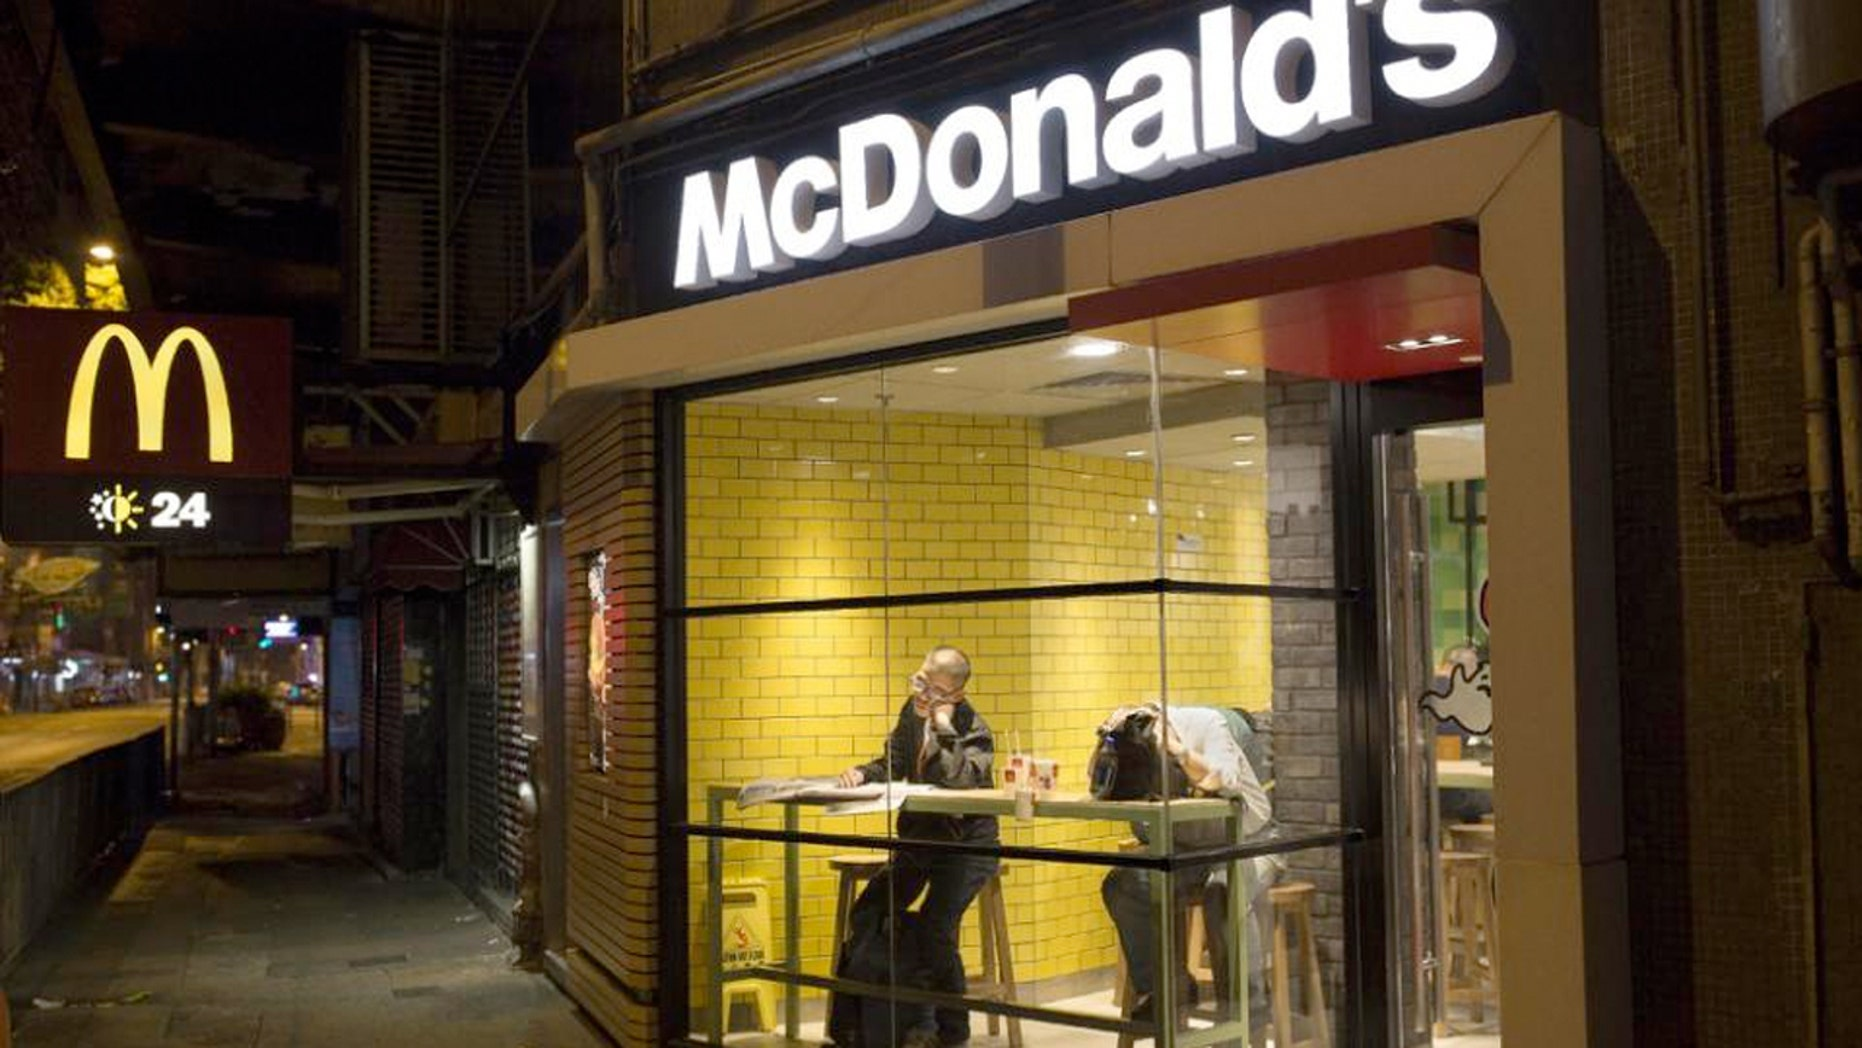 Two men sleep with their belongings at night in a 24-hour McDonald's branch in Hong Kong.